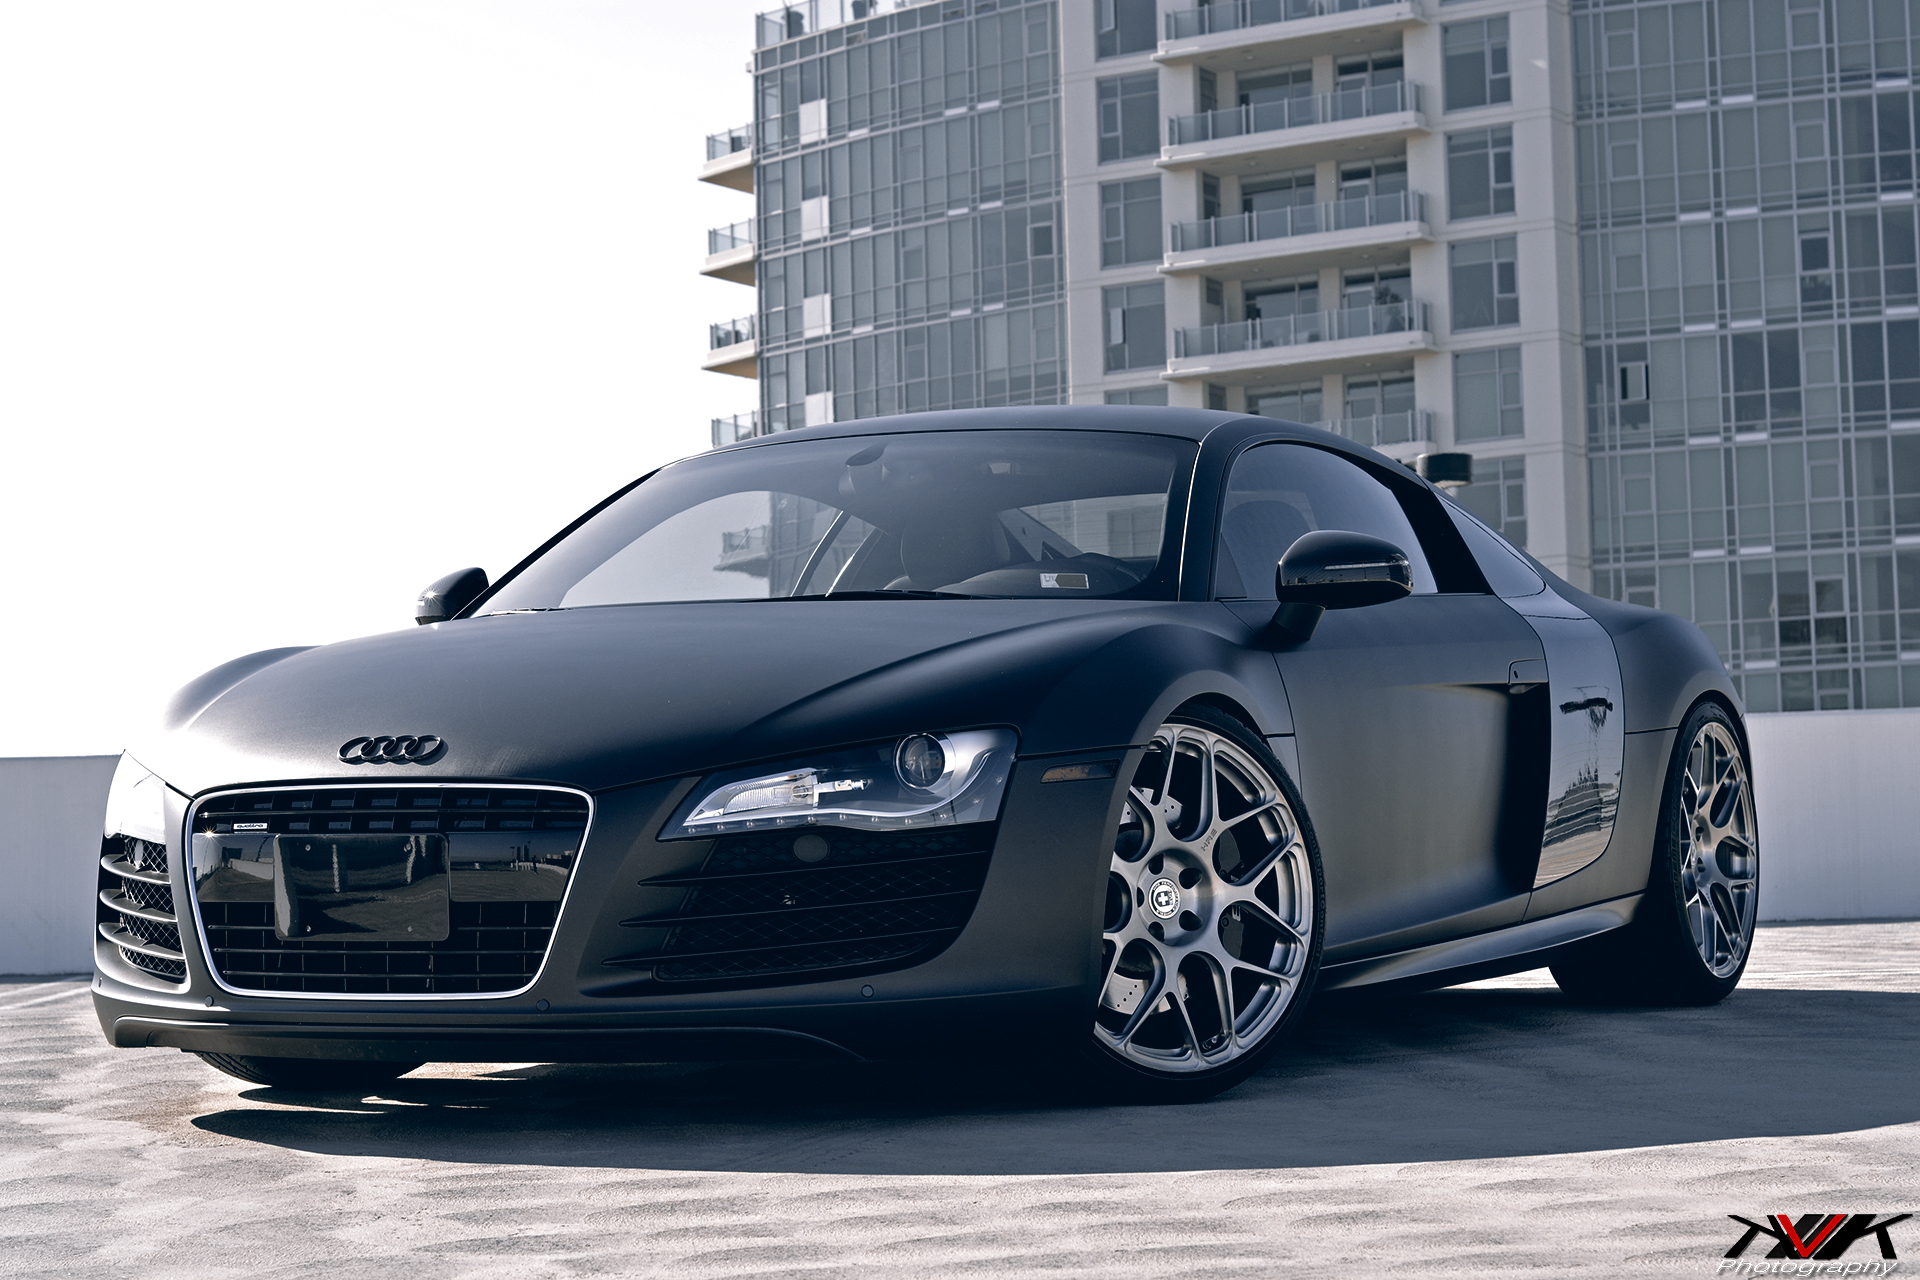 Matte Black Audi R On HRE PSCs By KVK Photography GTspirit - Audi r8 black